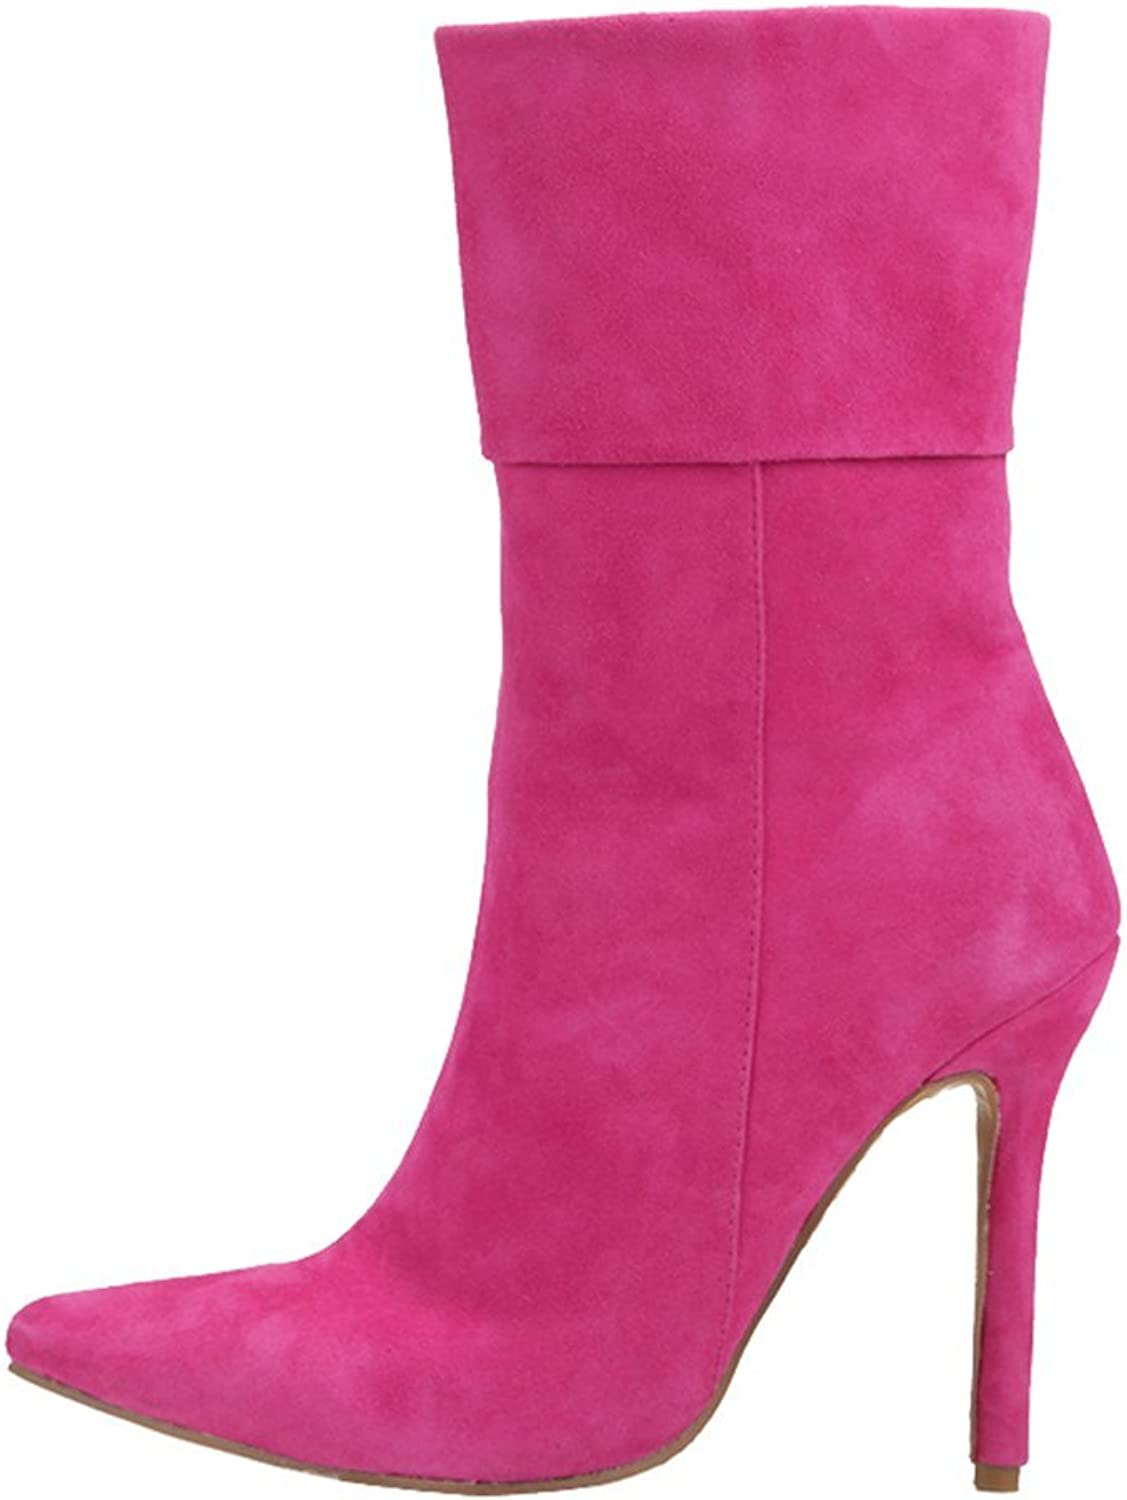 Lacitena Pointed Ankle Boots Ladies Short Boots Fushcia Party Half Boots